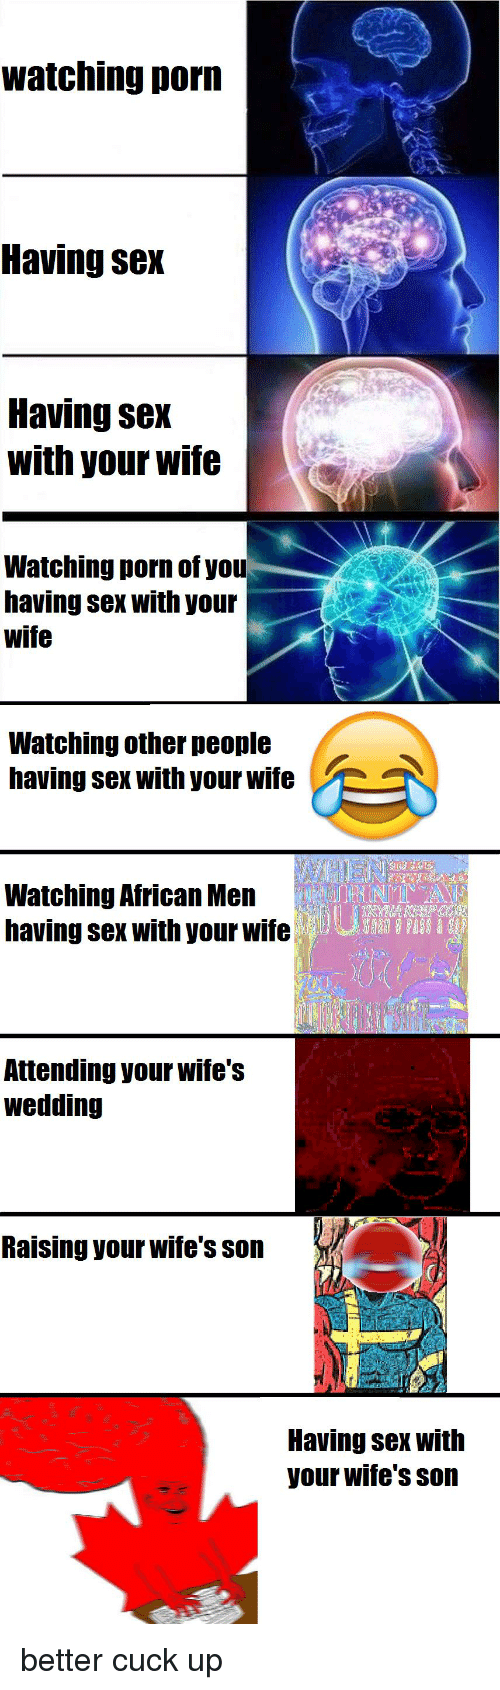 funny people having sex memes of 2017 on sizzle sex porn and wife watching porn having sex having sex your wife